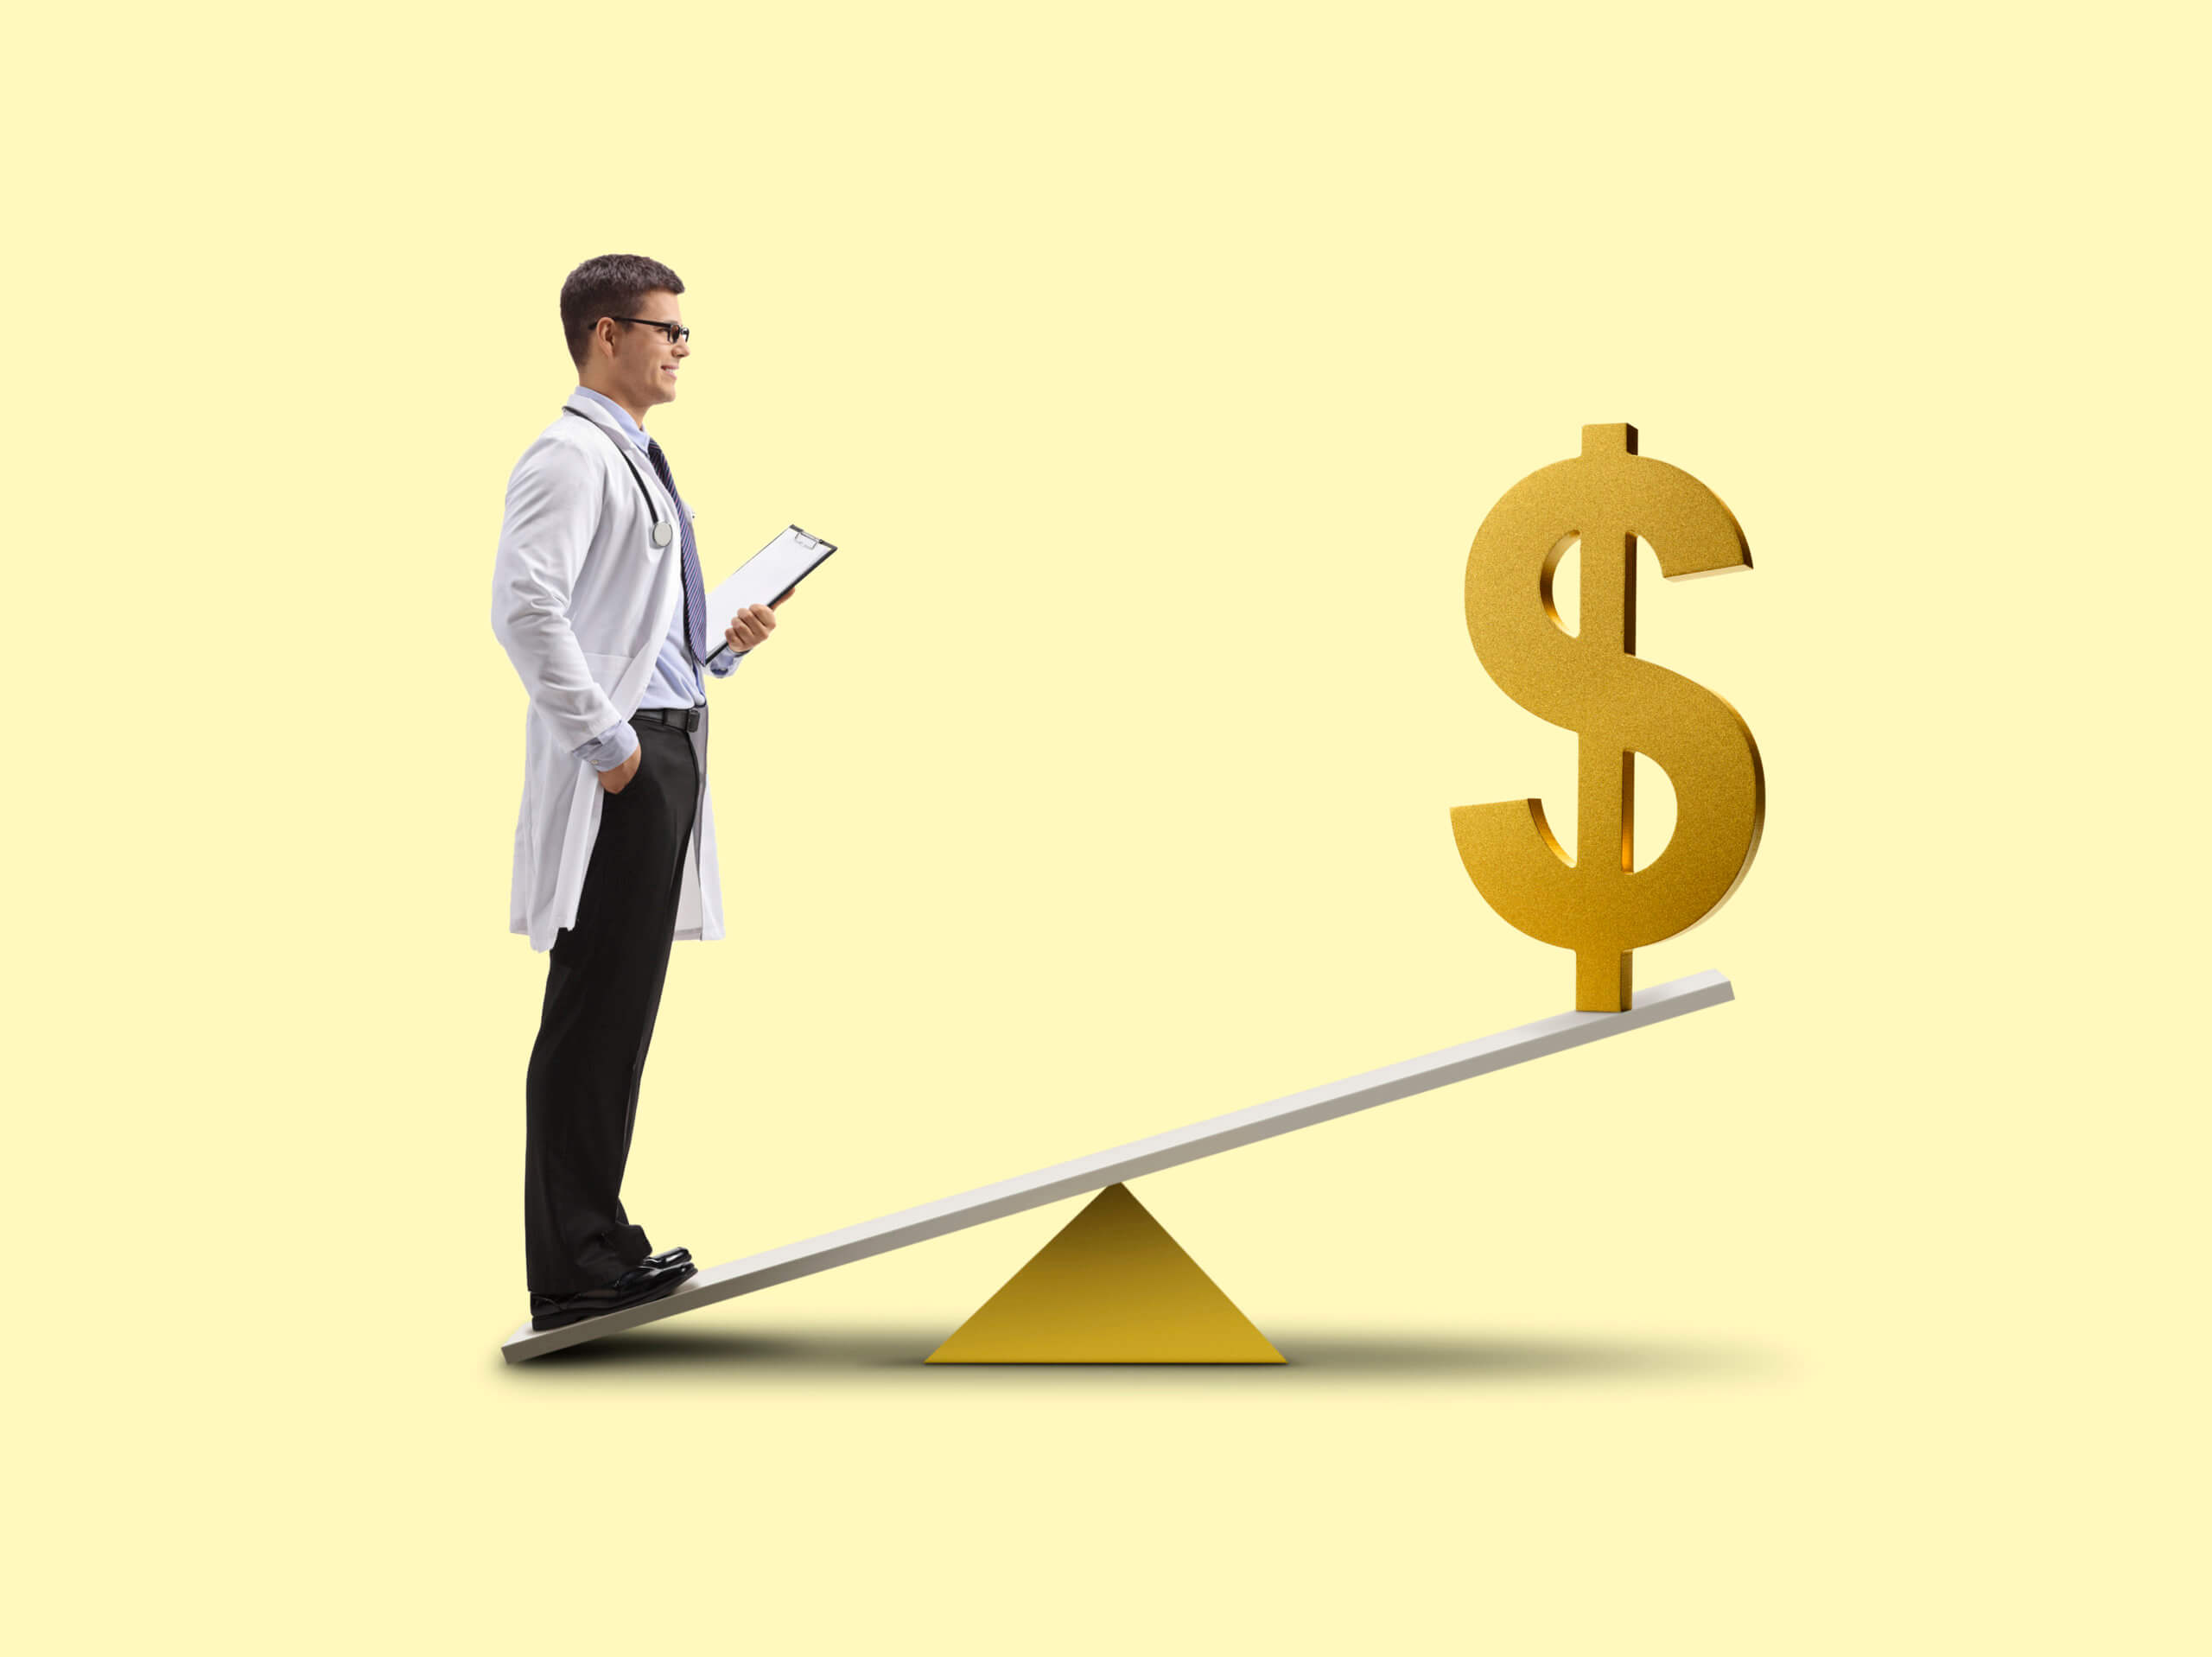 How to Leverage 340B Drug Pricing for Hospital Employees